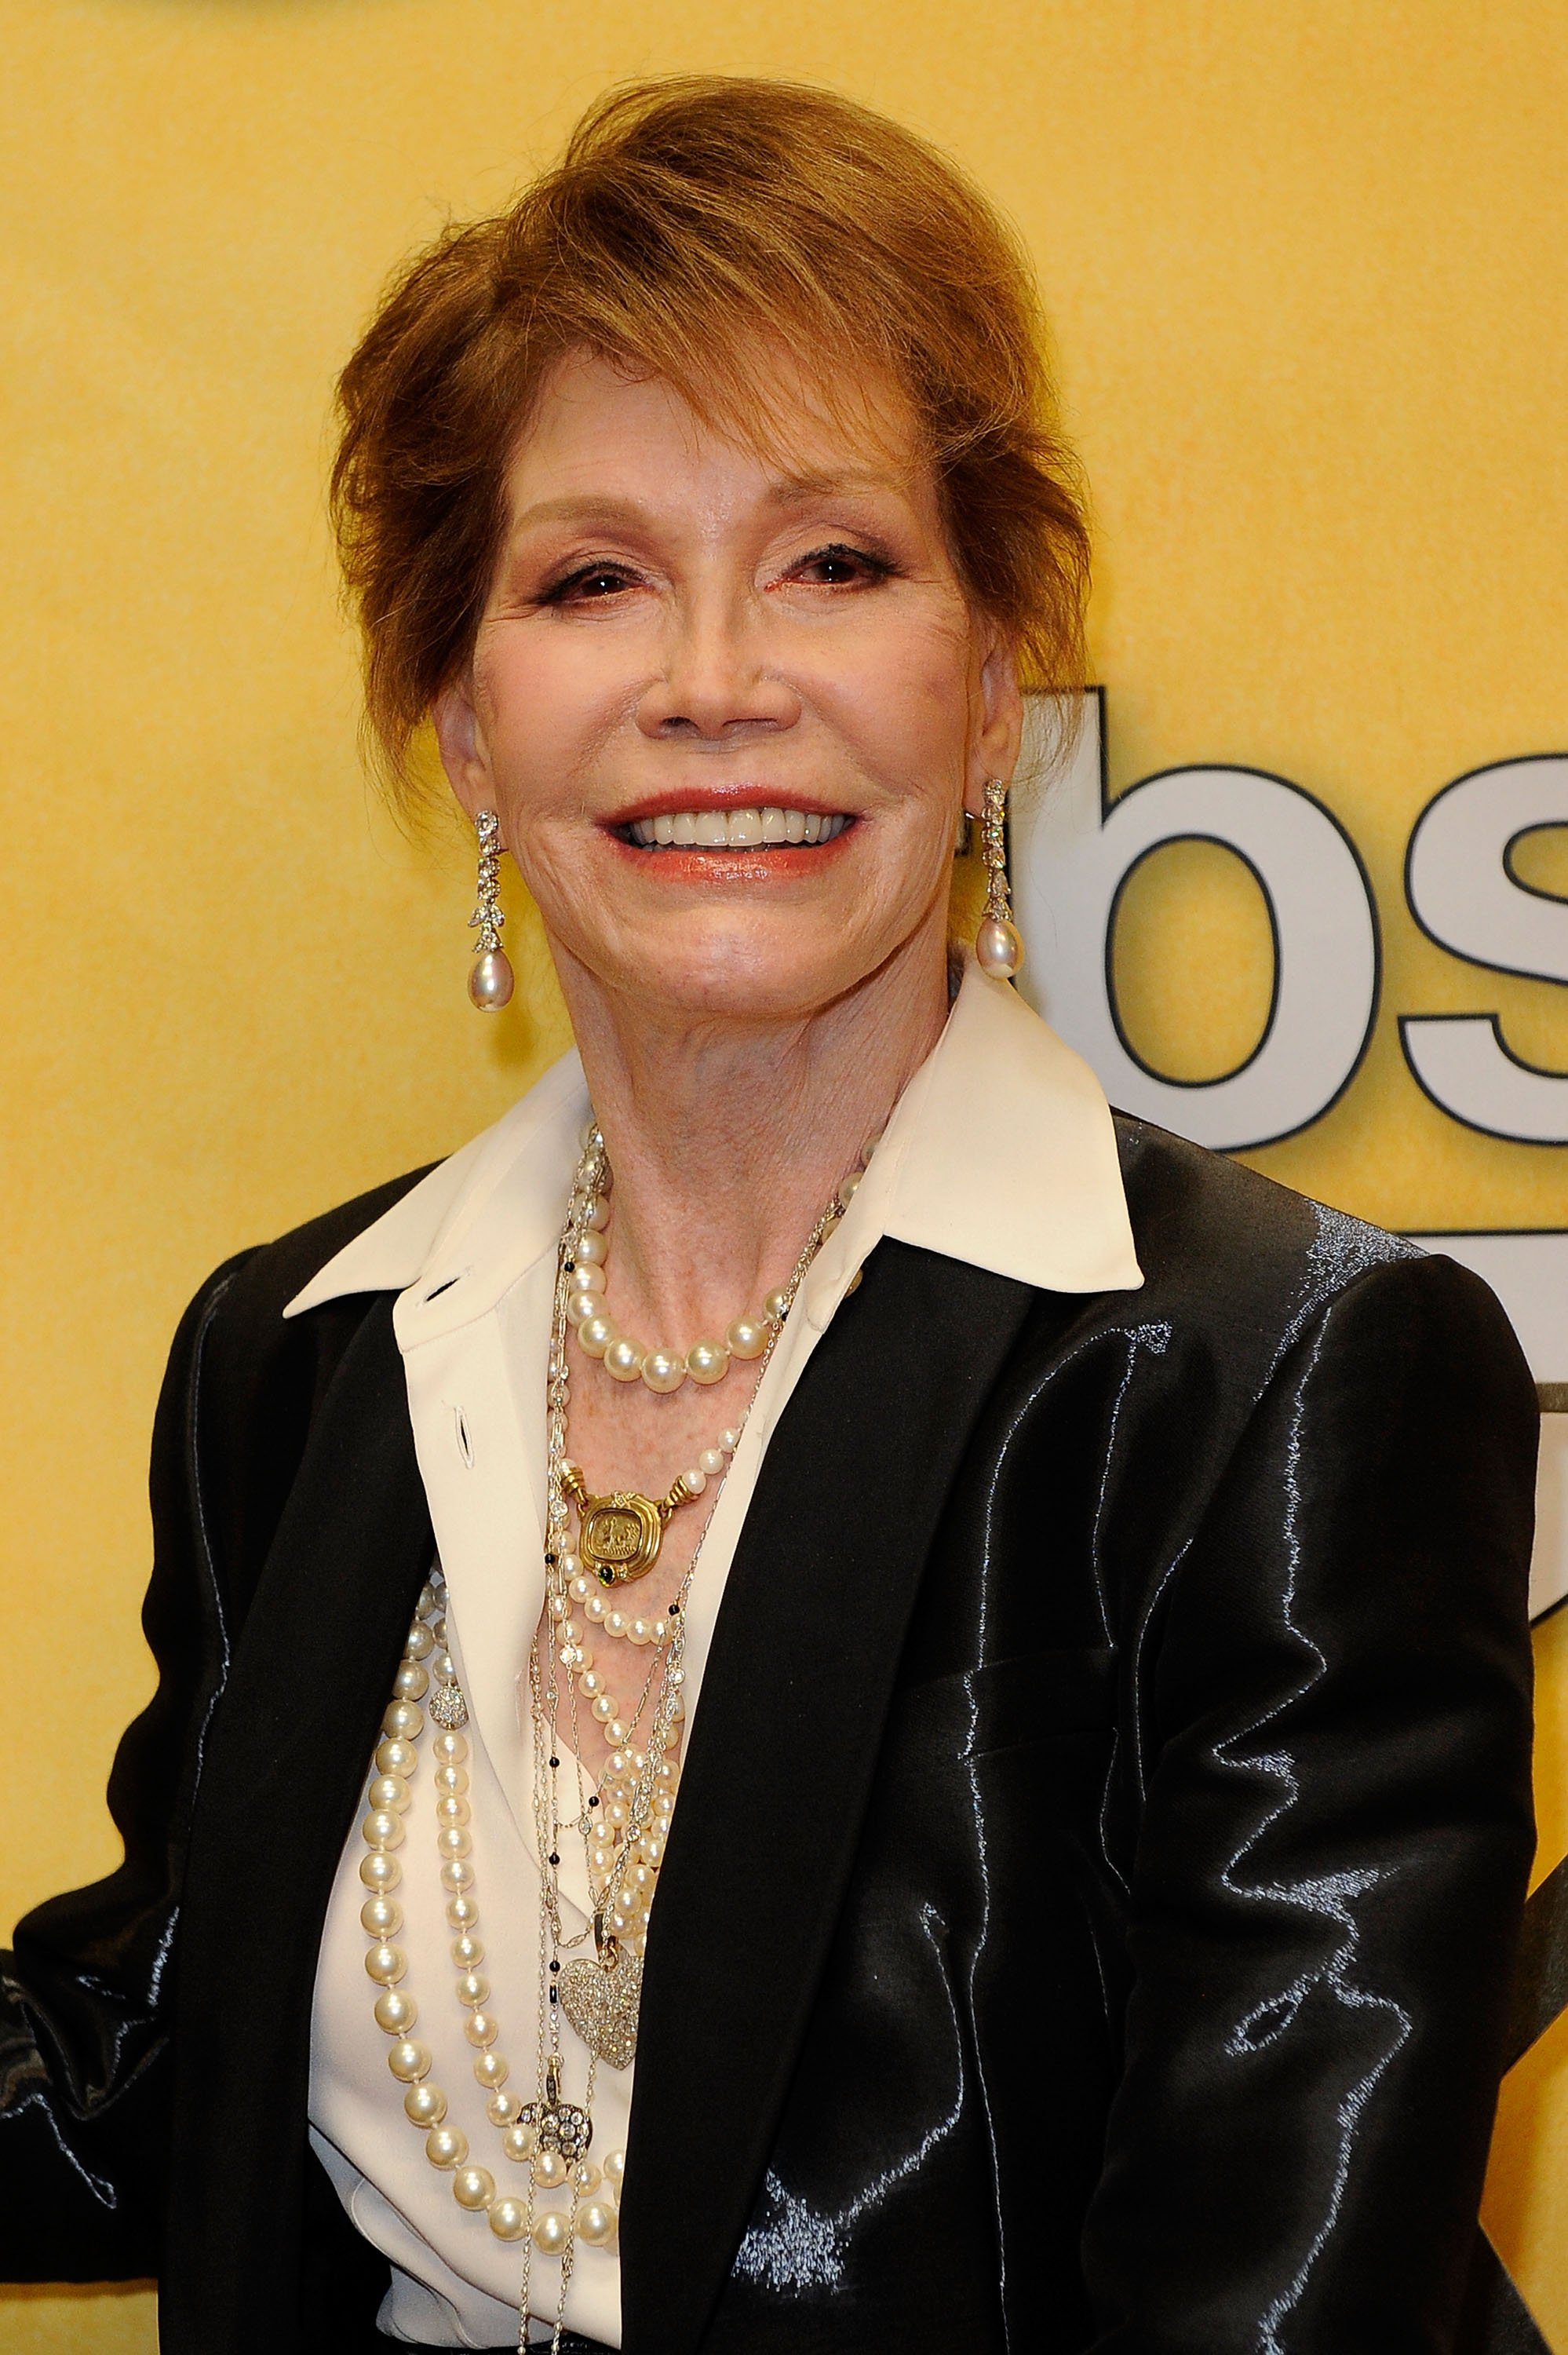 Mary Tyler Moore poses with her Life Achievement Award from the Screen Actors Guild backstage at the 18th Annual Screen Actors Guild Awards at The Shrine Auditorium on January 29, 2012 in Los Angele